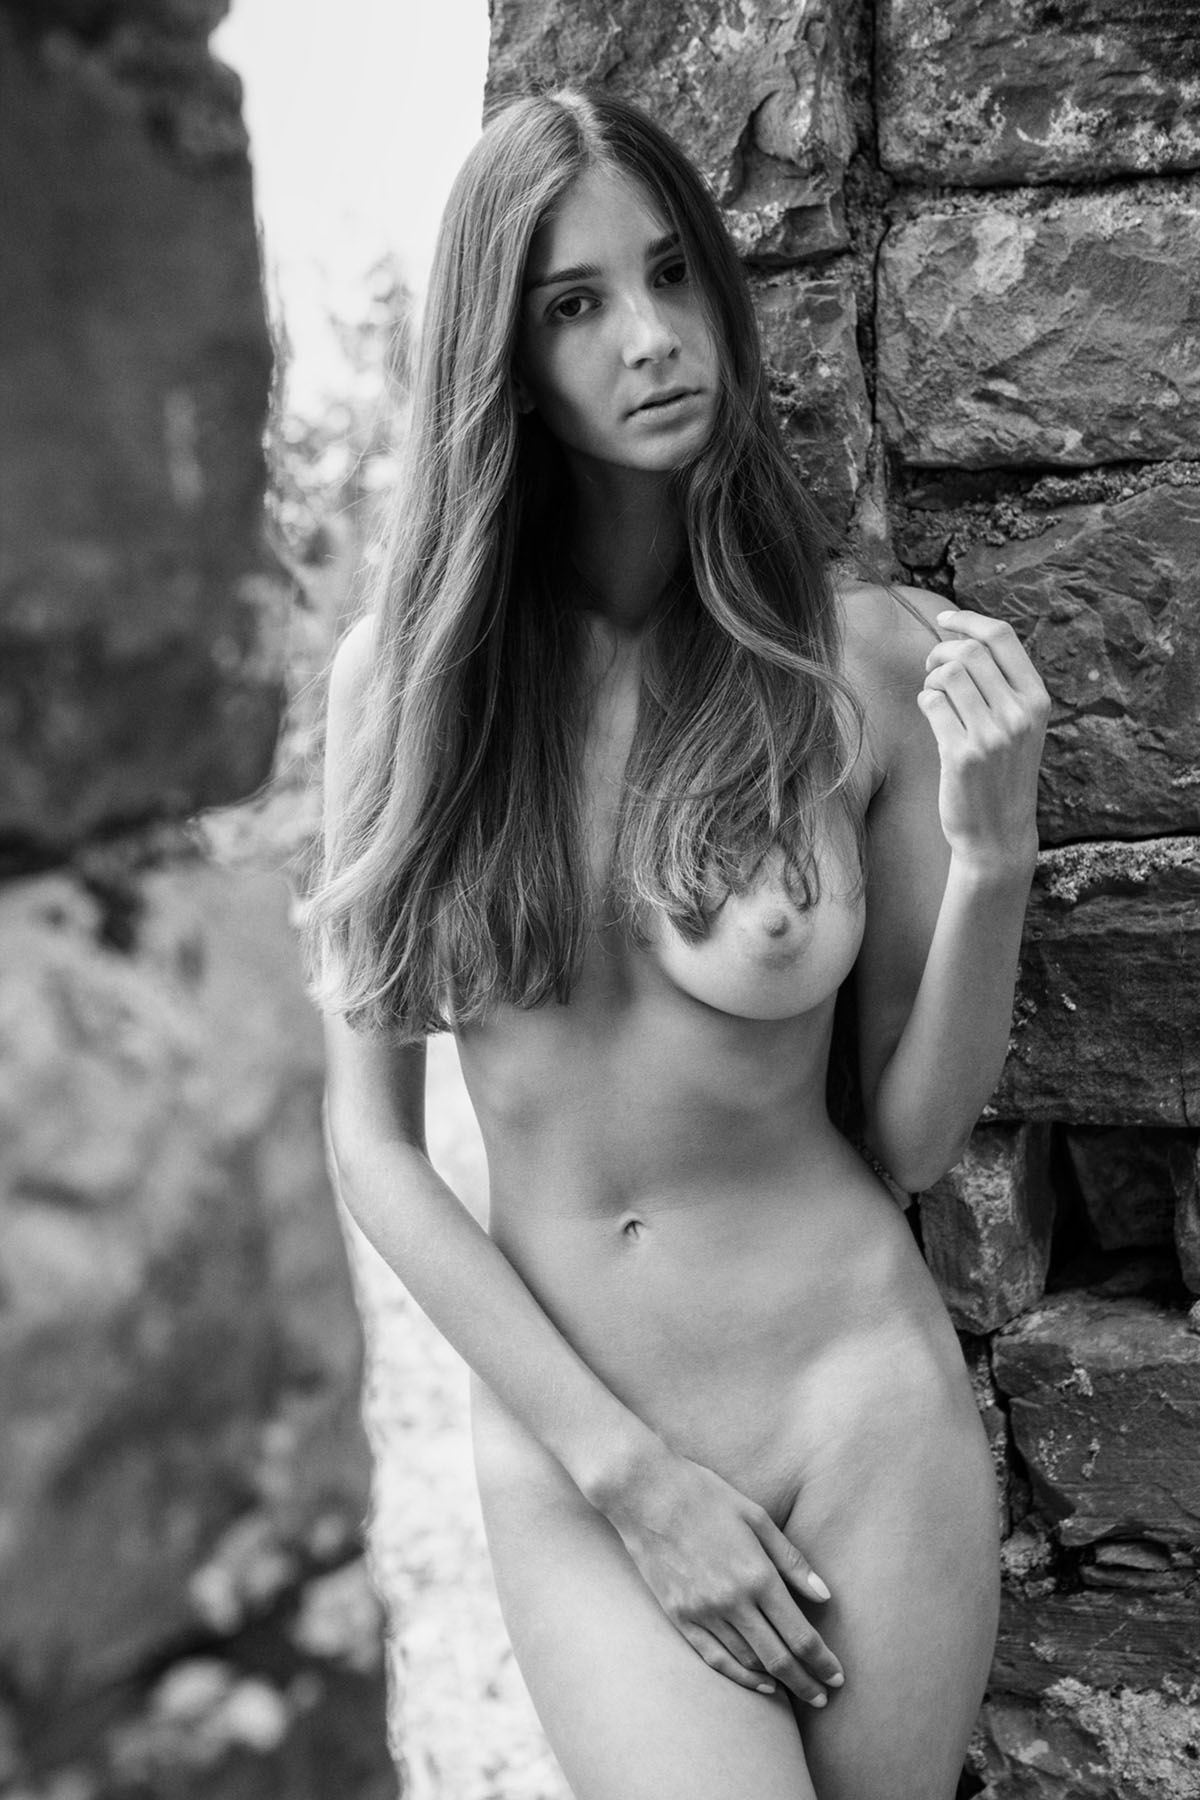 c-headsmag: linamarco michieletto for c-head | b&w | pinterest